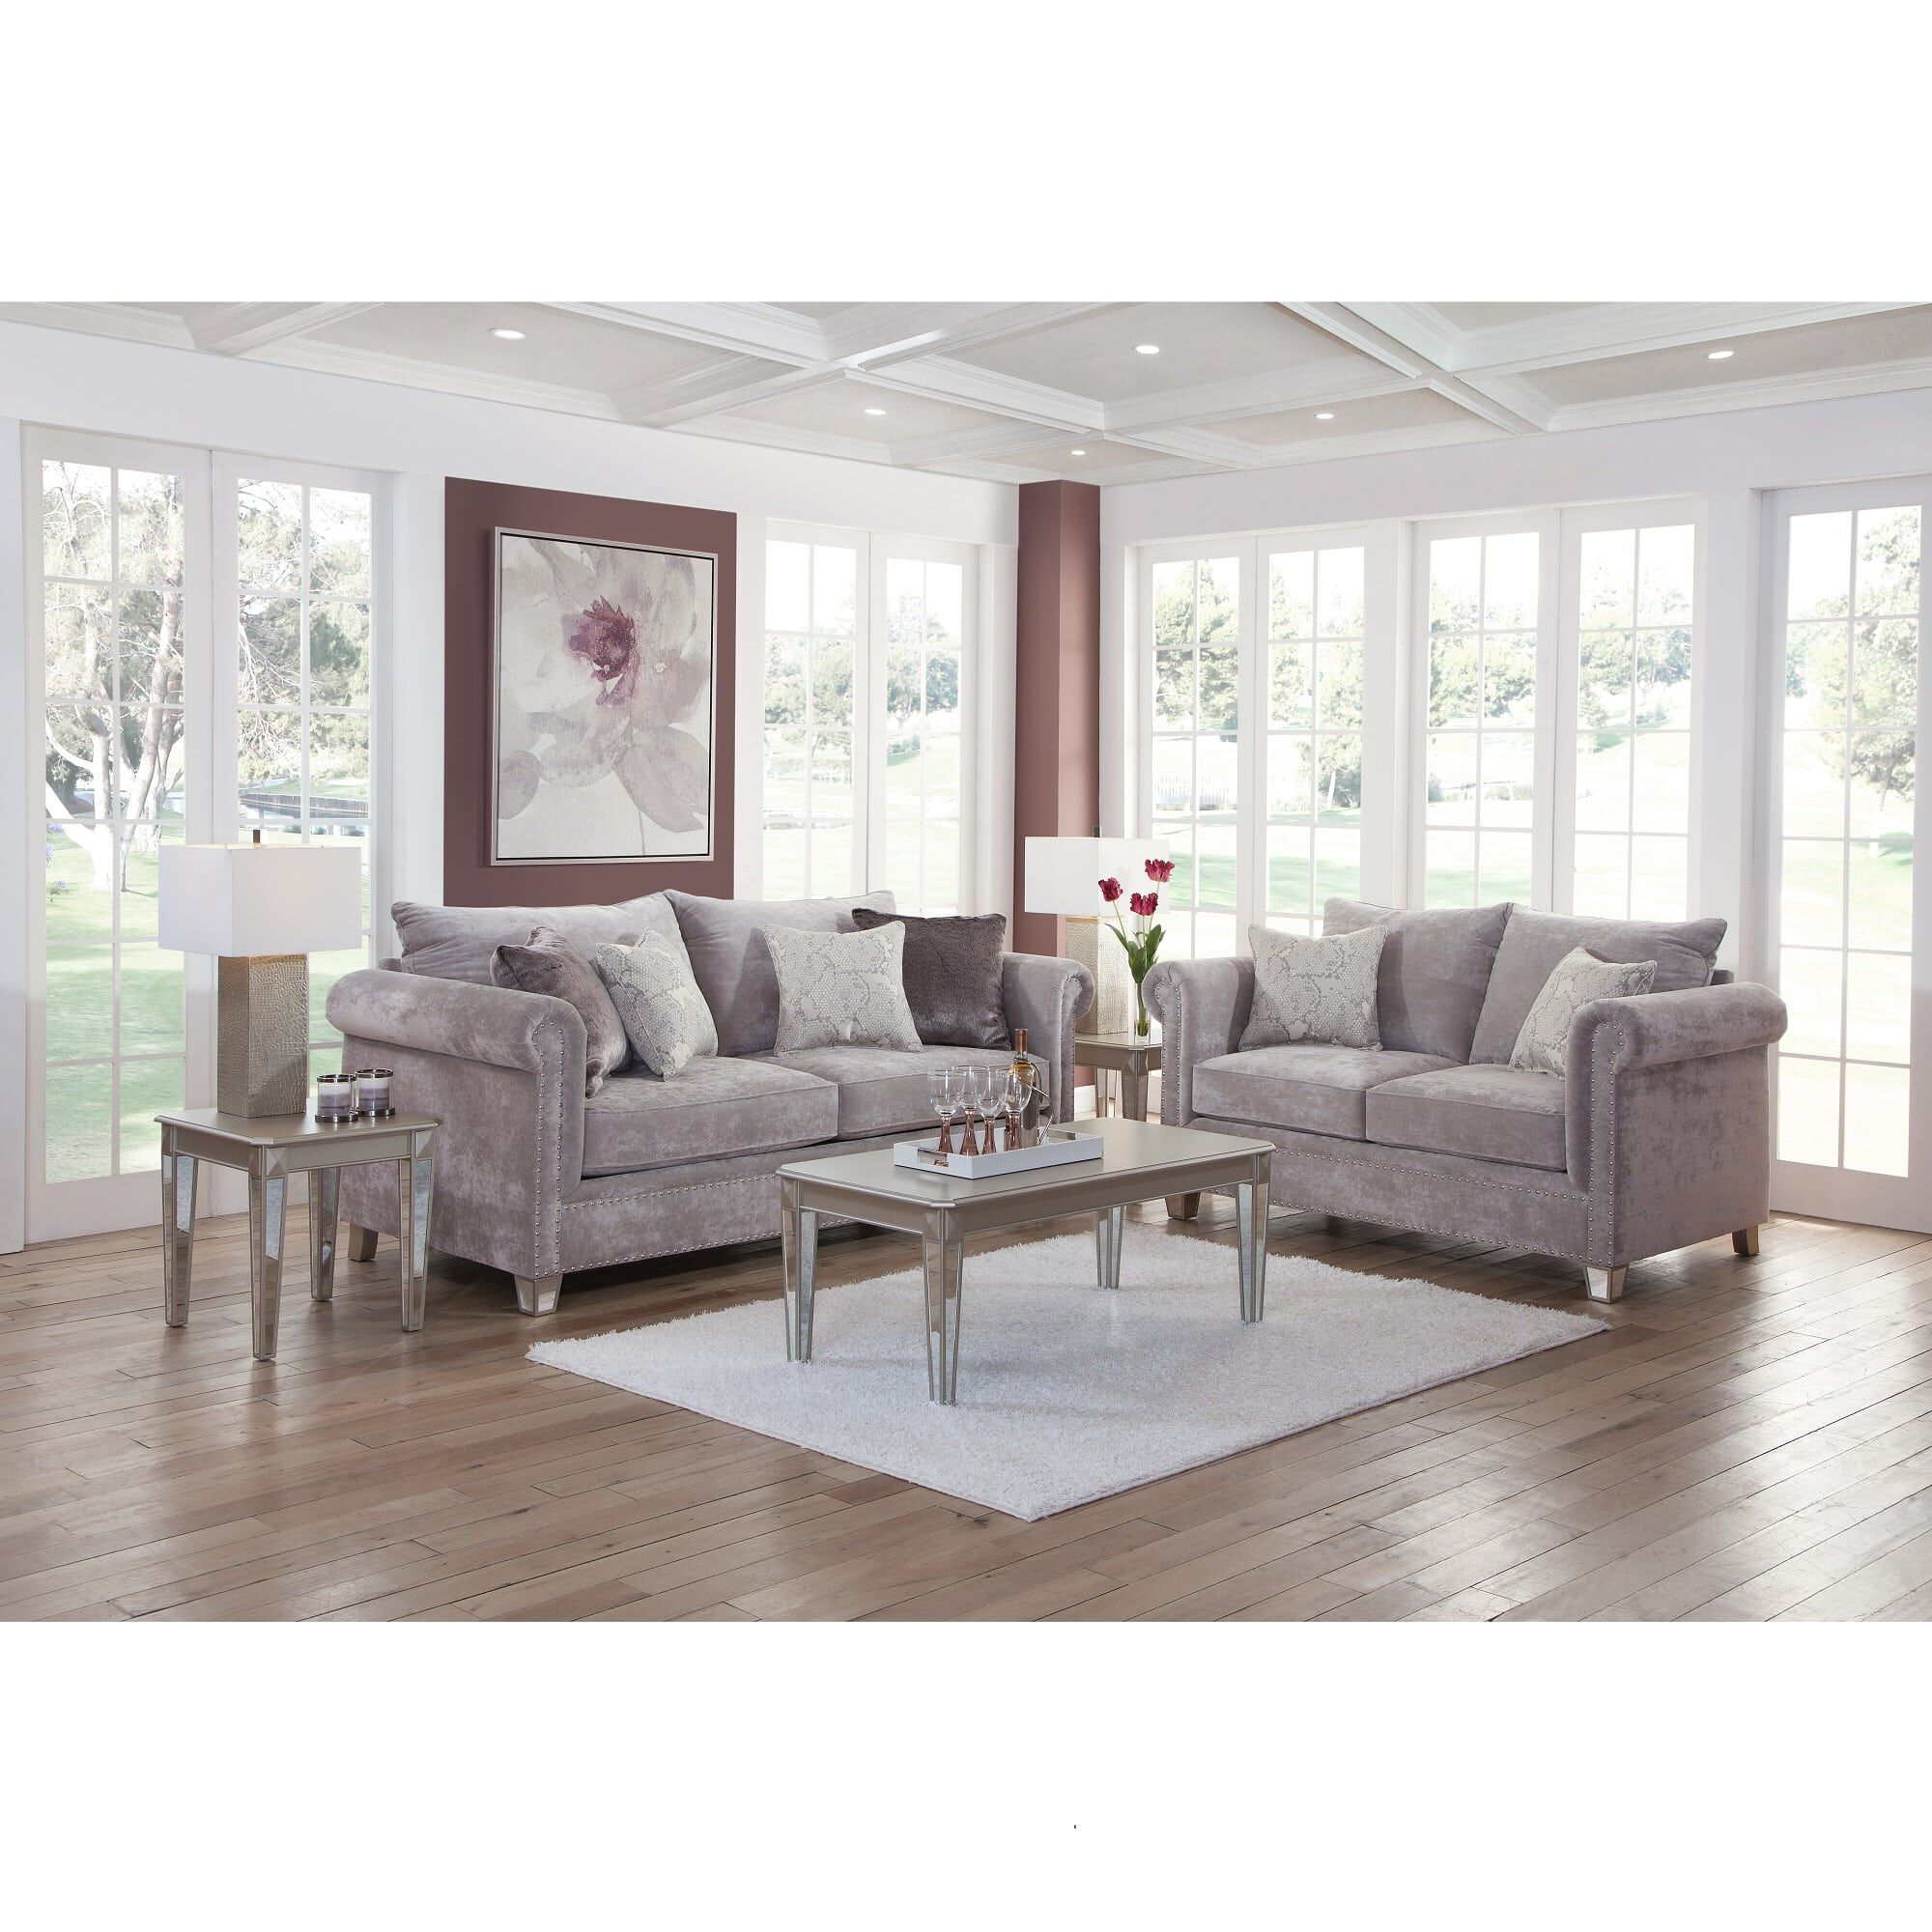 Sofas For Sale Pay Monthly Woodhaven Furniture Industries Living Room Sets 2-piece